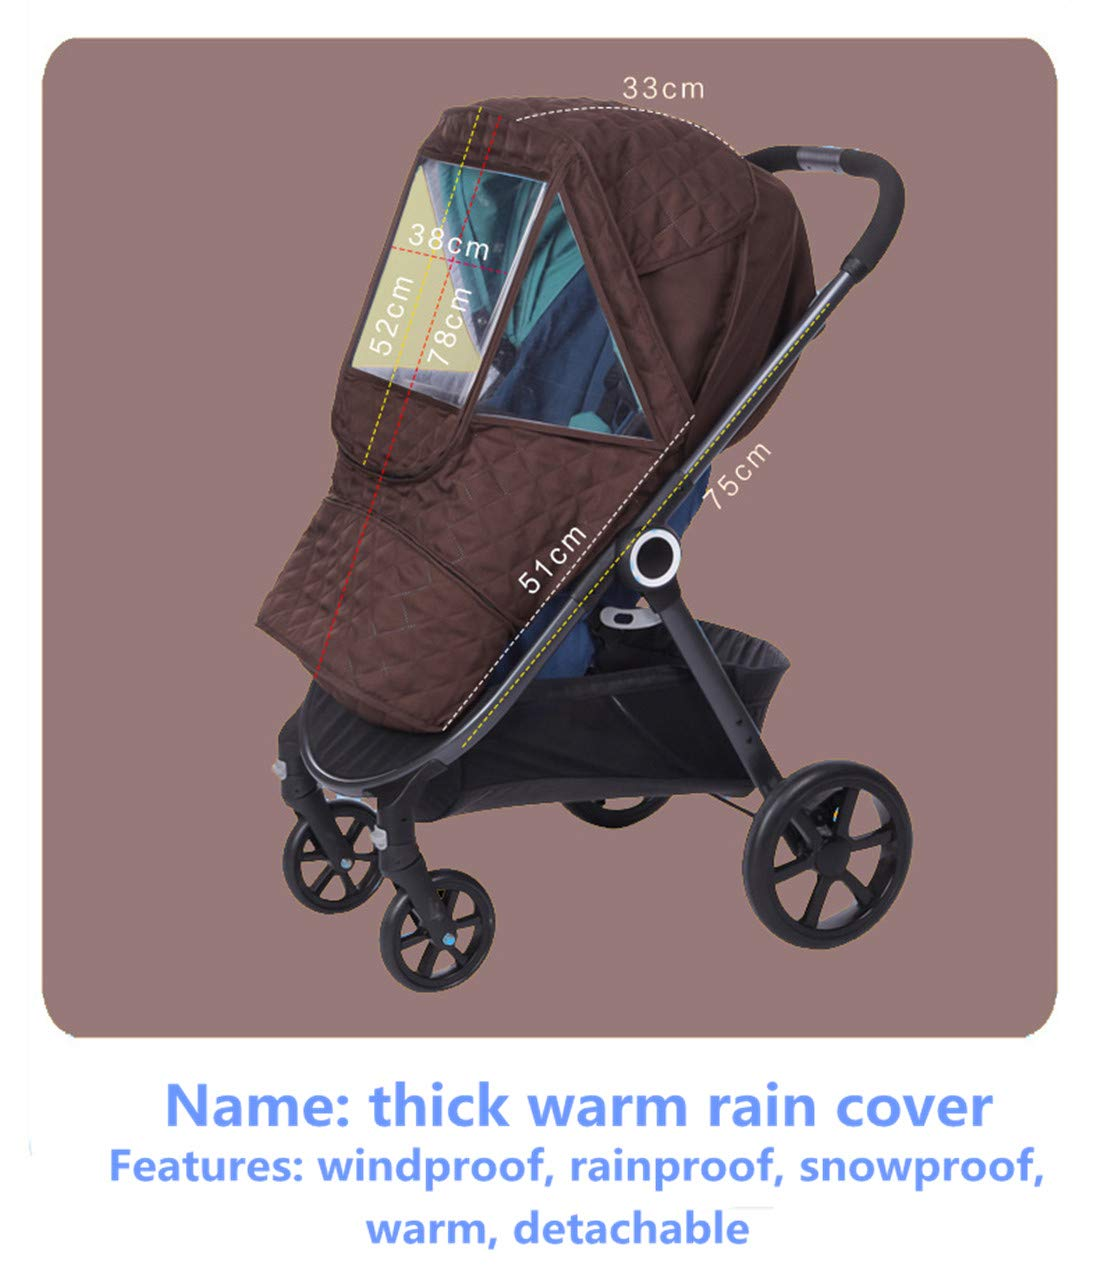 Universal Stroller rain Cover Baby Stroller Windshield rain Cover, Snow Cover, Warm Winter Sunshade Waterproof Cover (Brown Color) by Anglebay (Image #4)